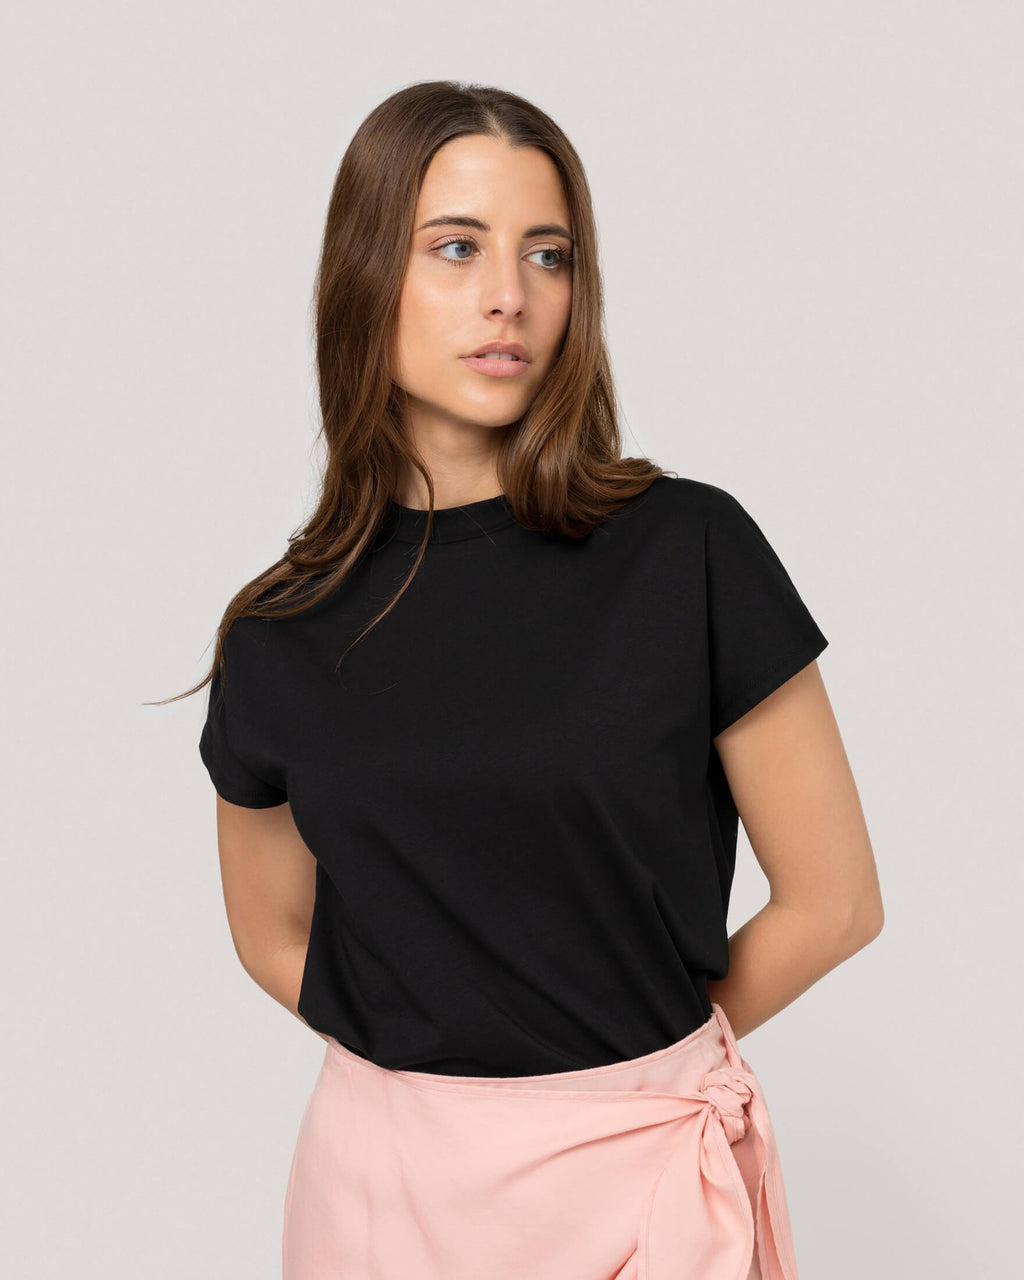 variant_2 | EN Shirt Basic Black Women won hundred | DE T-Shirt Basic Schwarz Damen won hundred